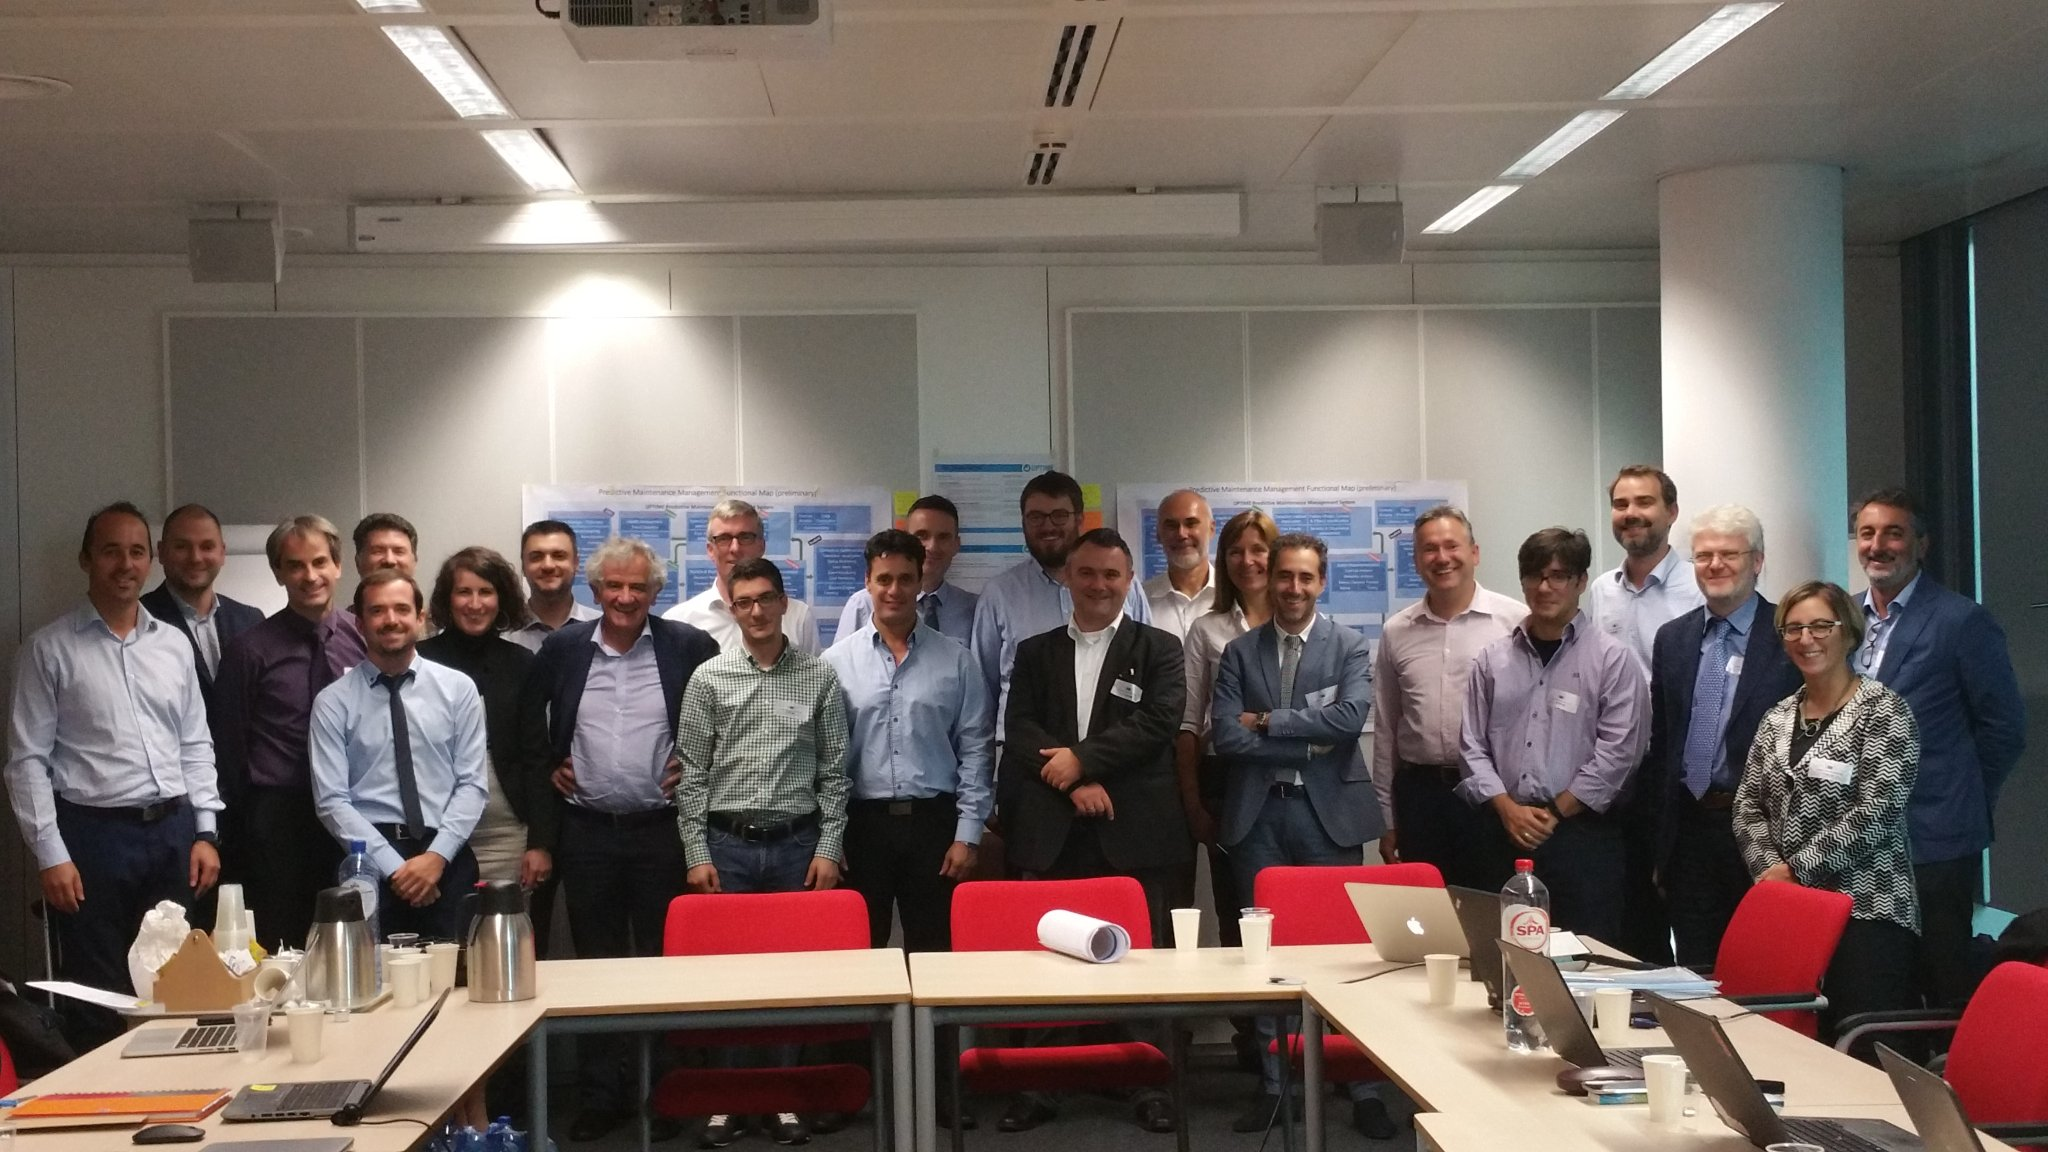 UPTIME Kick-Off Meeting on 27 and 28 September 2017 in Brussels